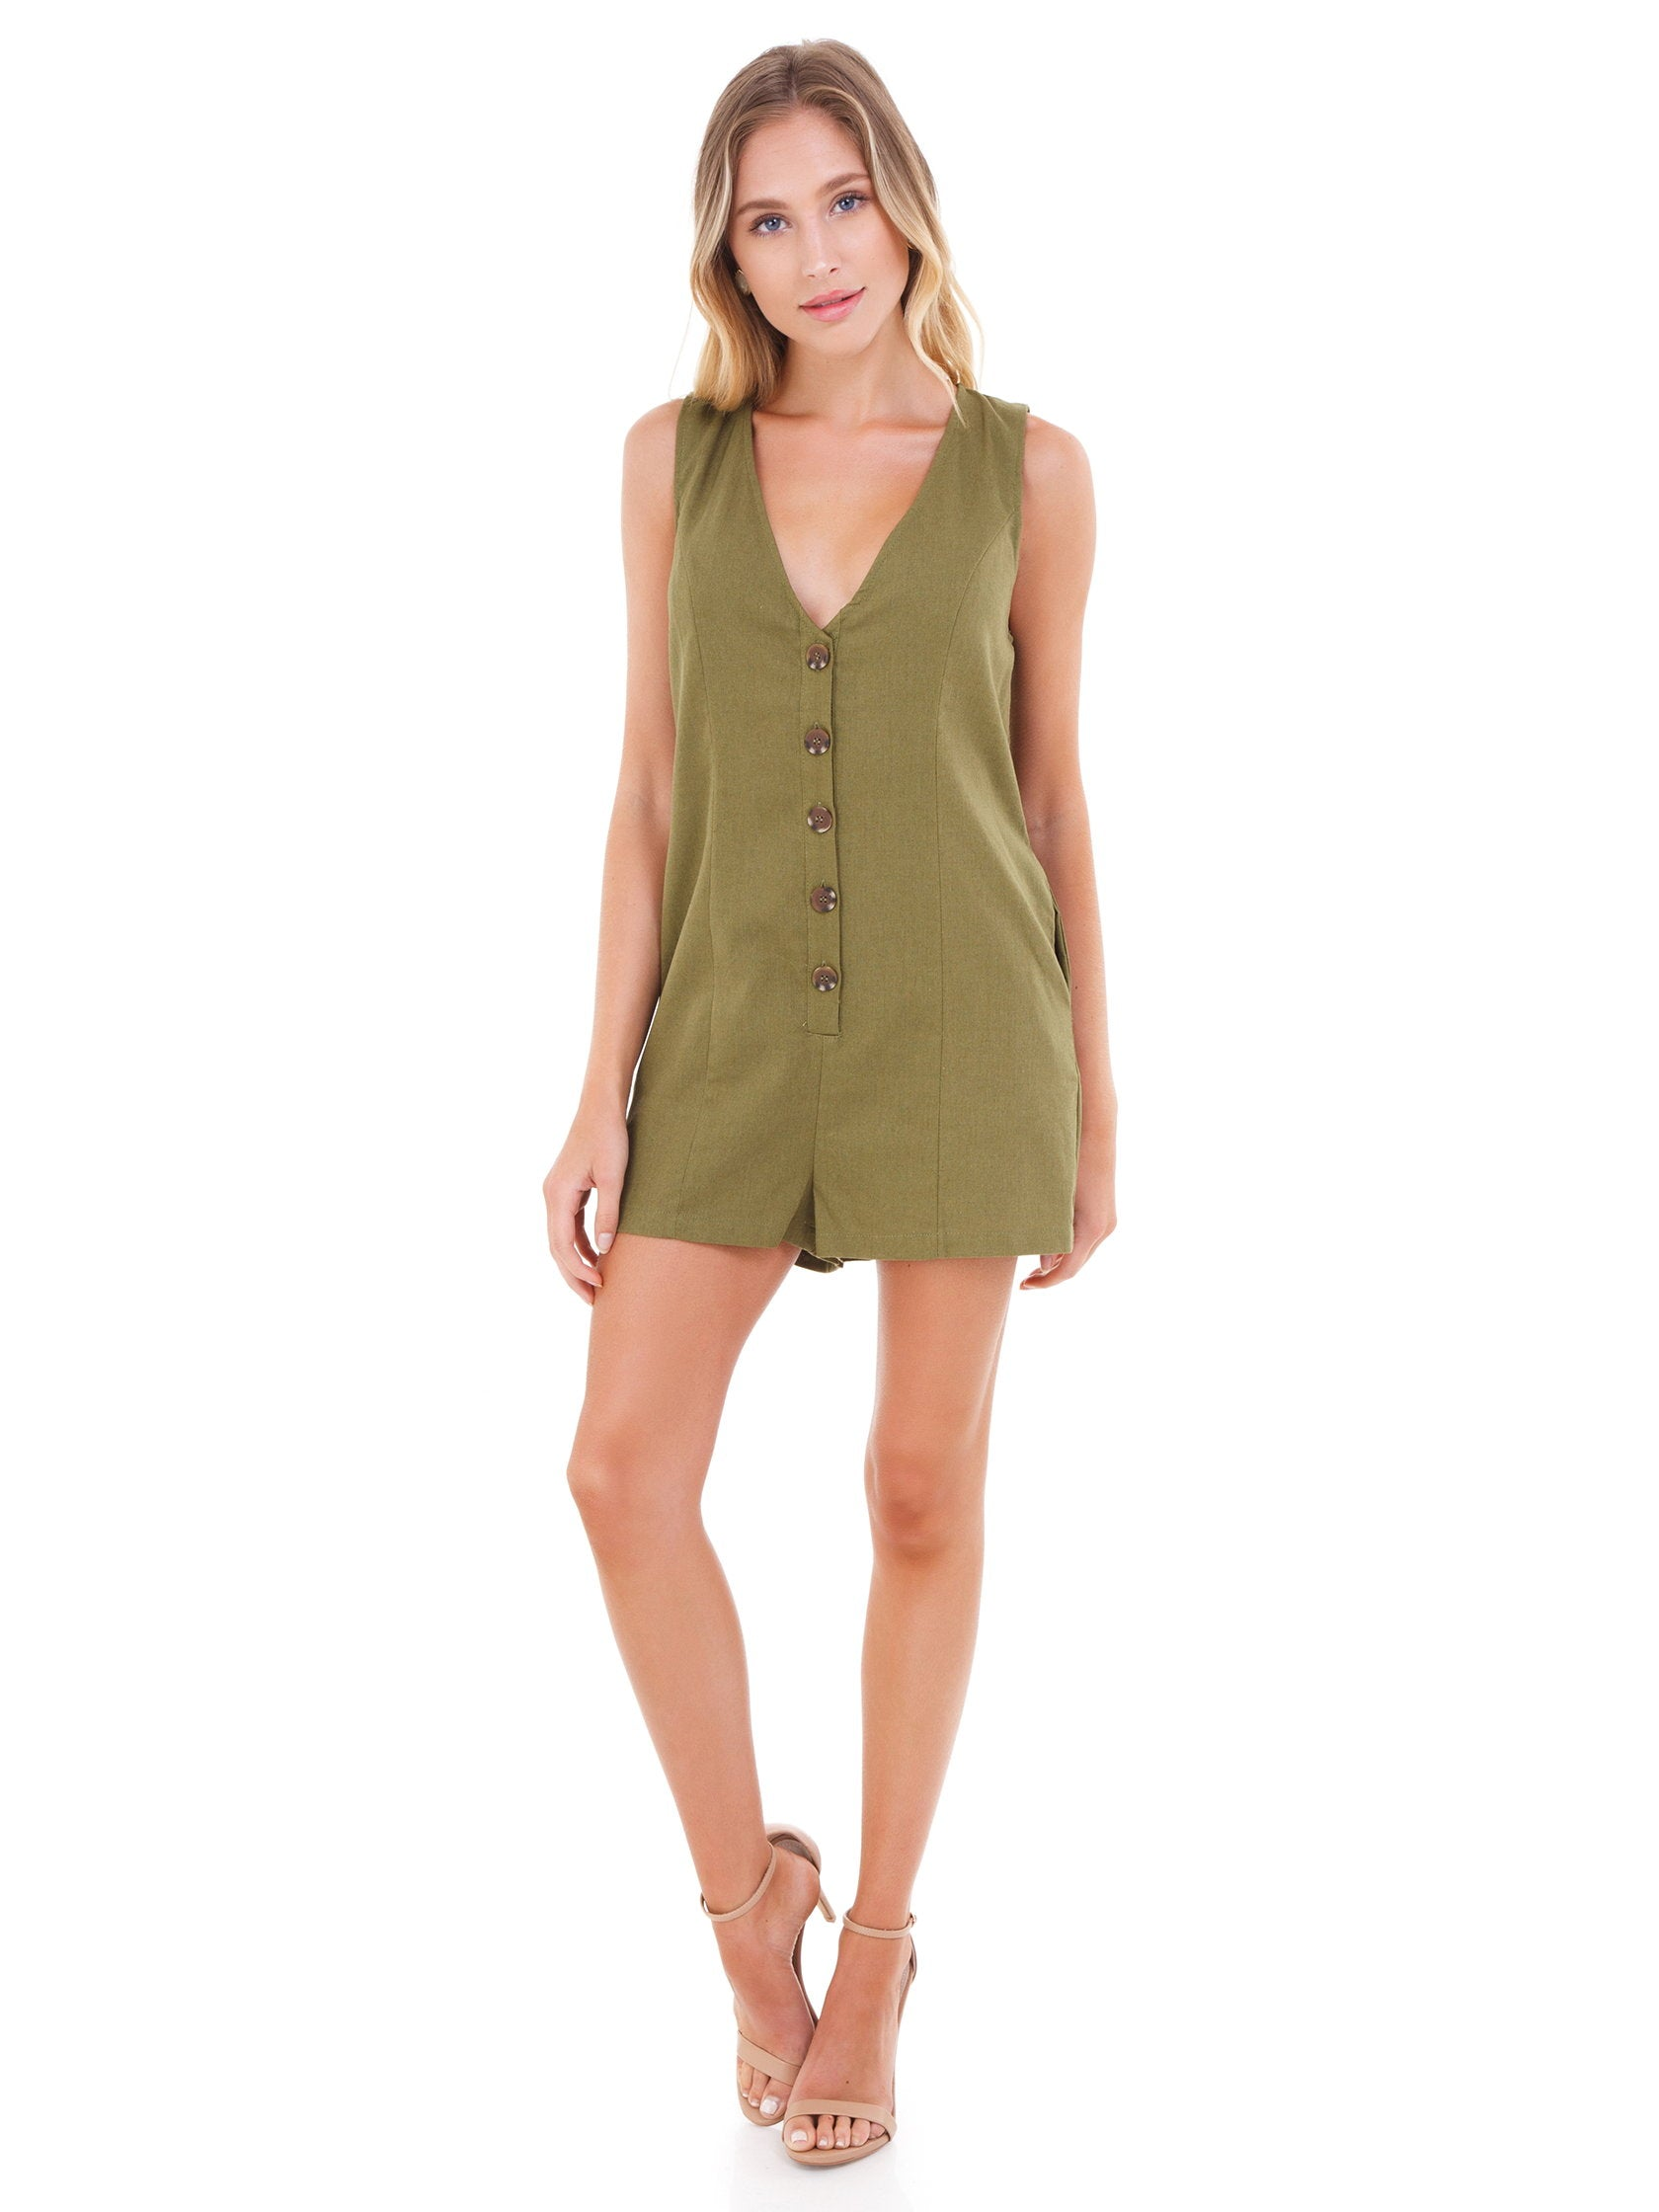 bb8ec97488f Girl outfit in a romper rental from FashionPass called Woven Button Down  Romper